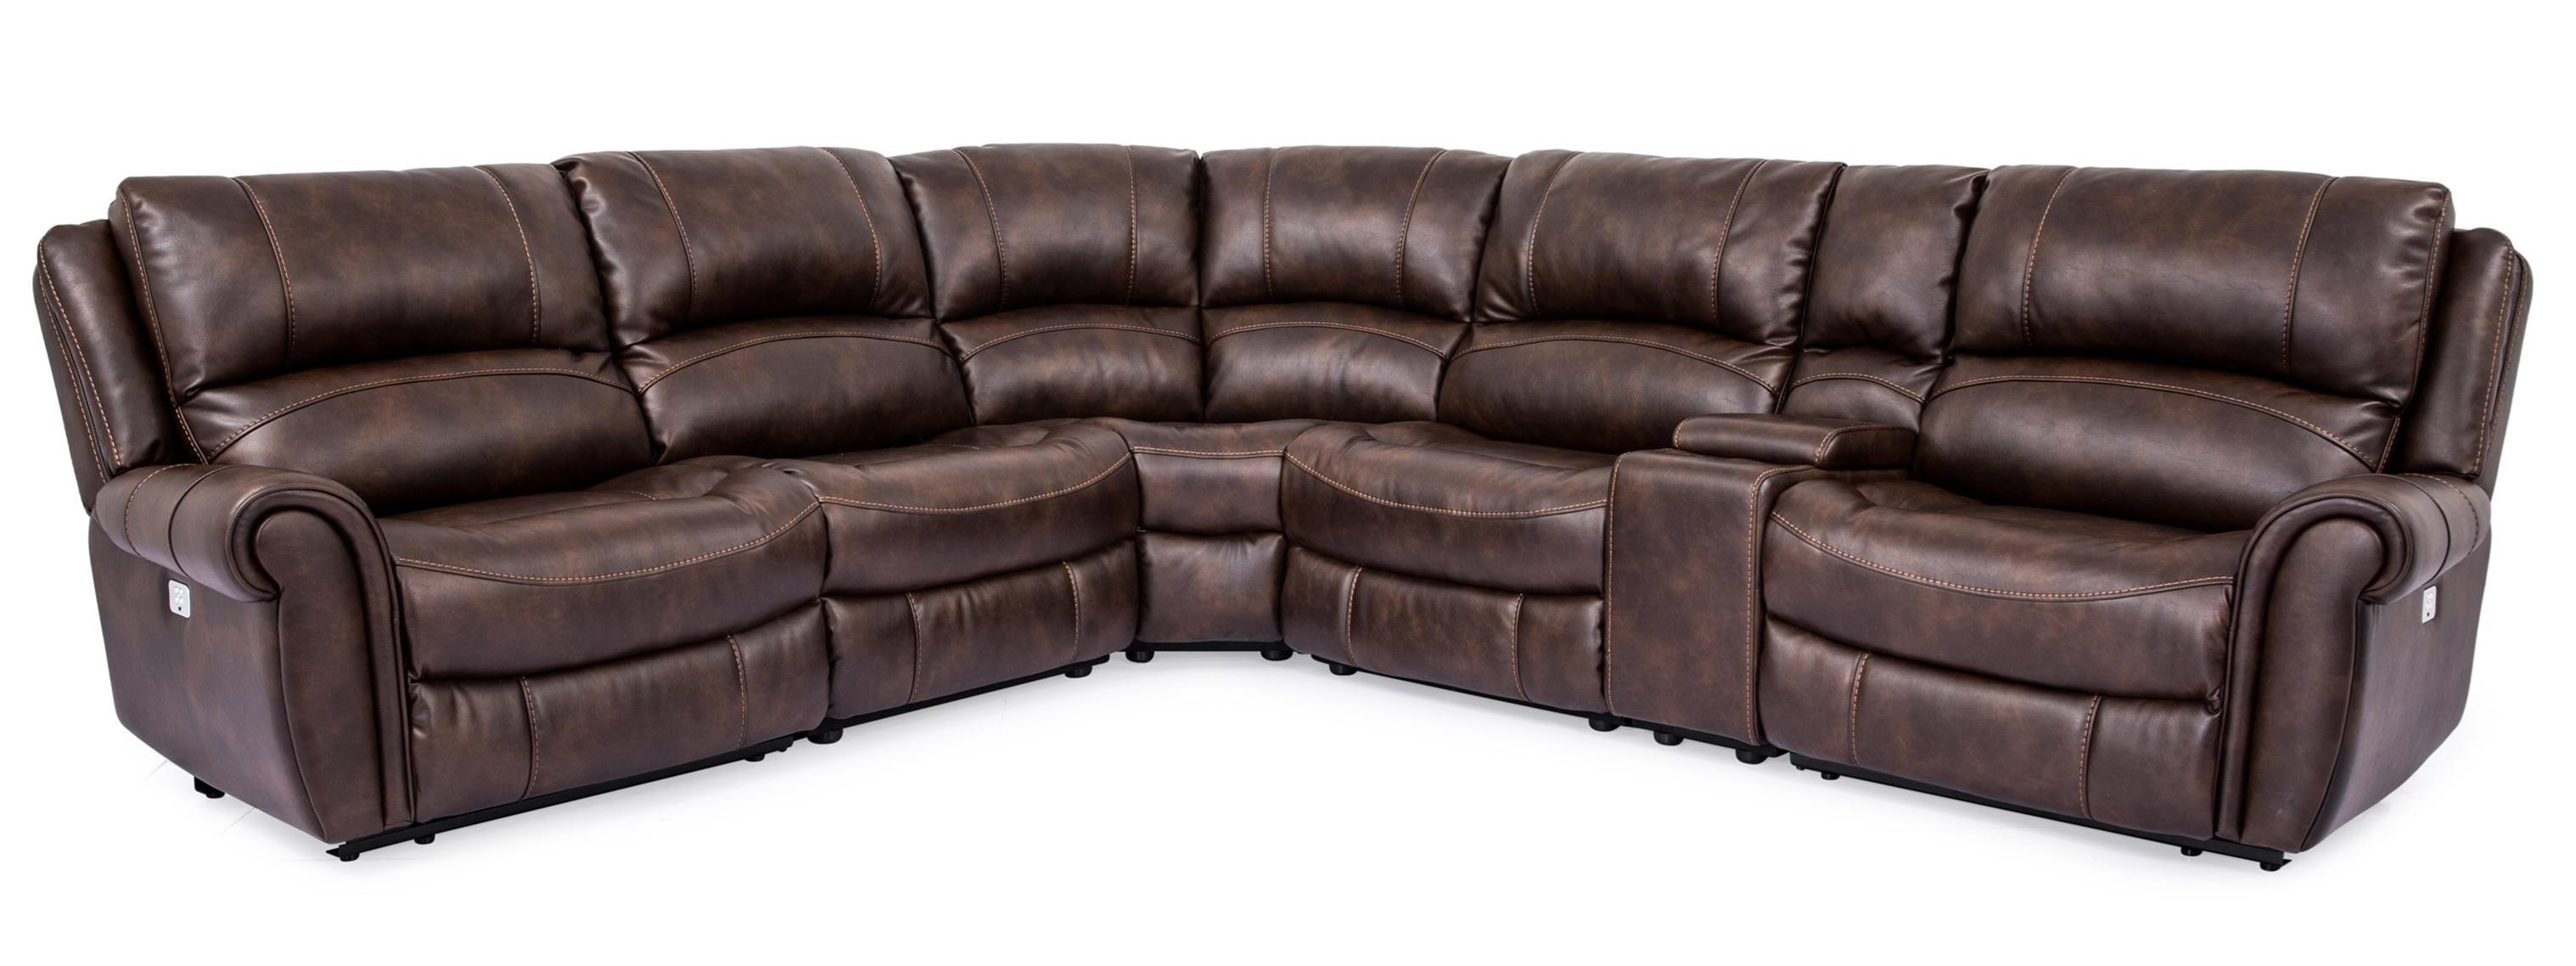 5175M Power Reclining Sectional by Cheers at Lagniappe Home Store